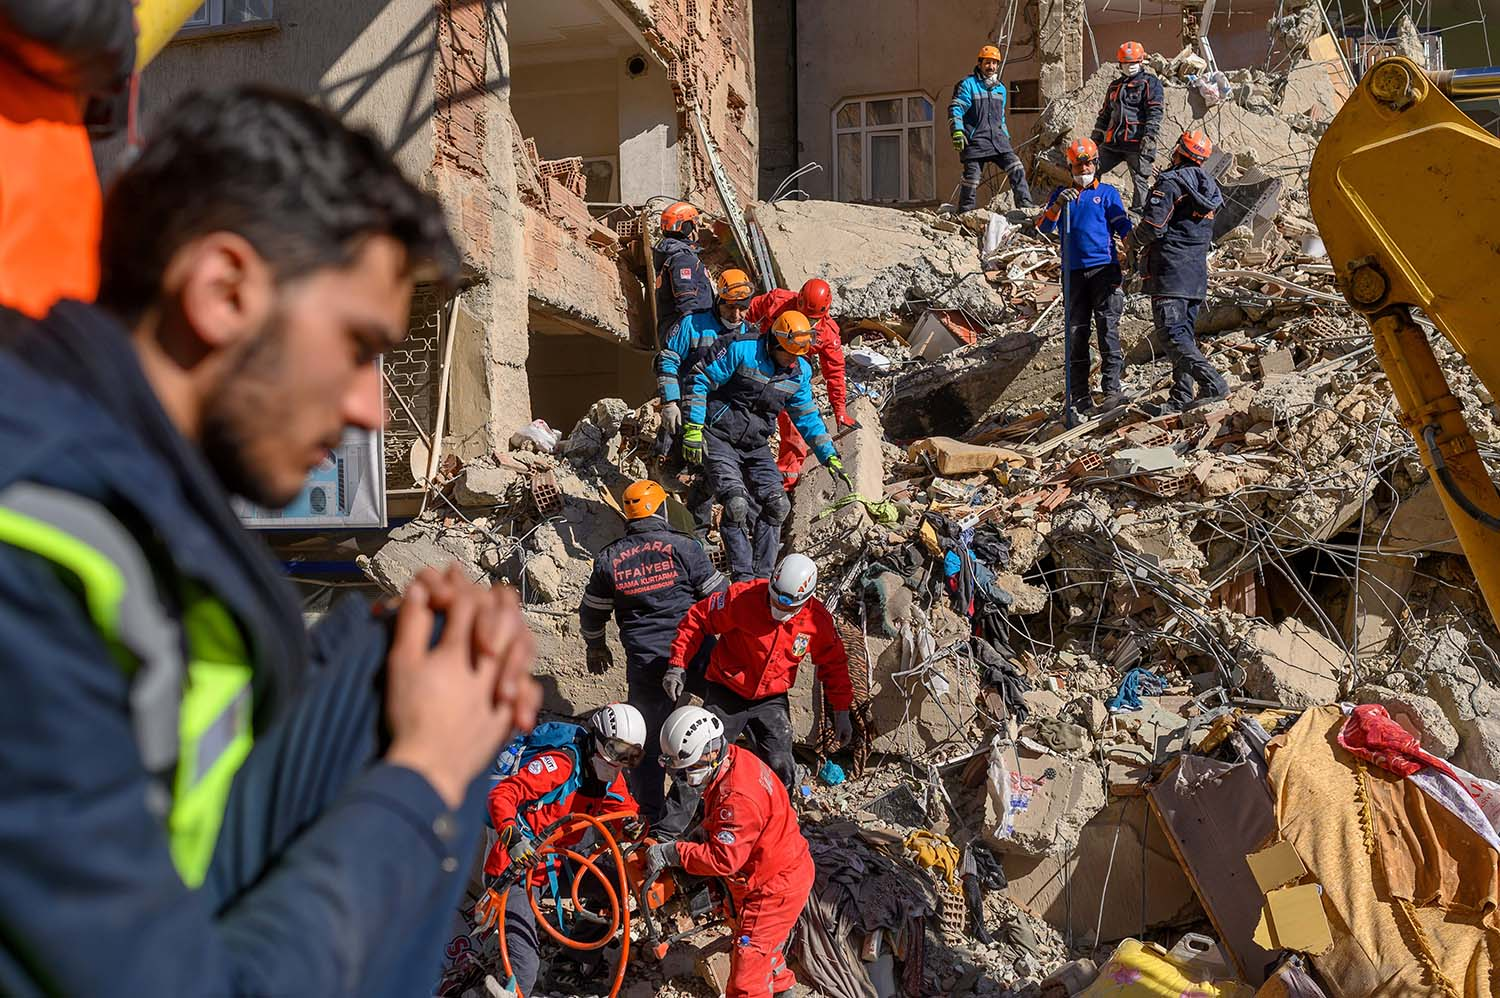 Rescue workers sift through the rubble of a building after an earthquake in Elazig, eastern Turkey, on Jan. 25. The magnitude 6.8 quake killed at least 41 and injured hundreds. BULENT KILIC/AFP via Getty Images